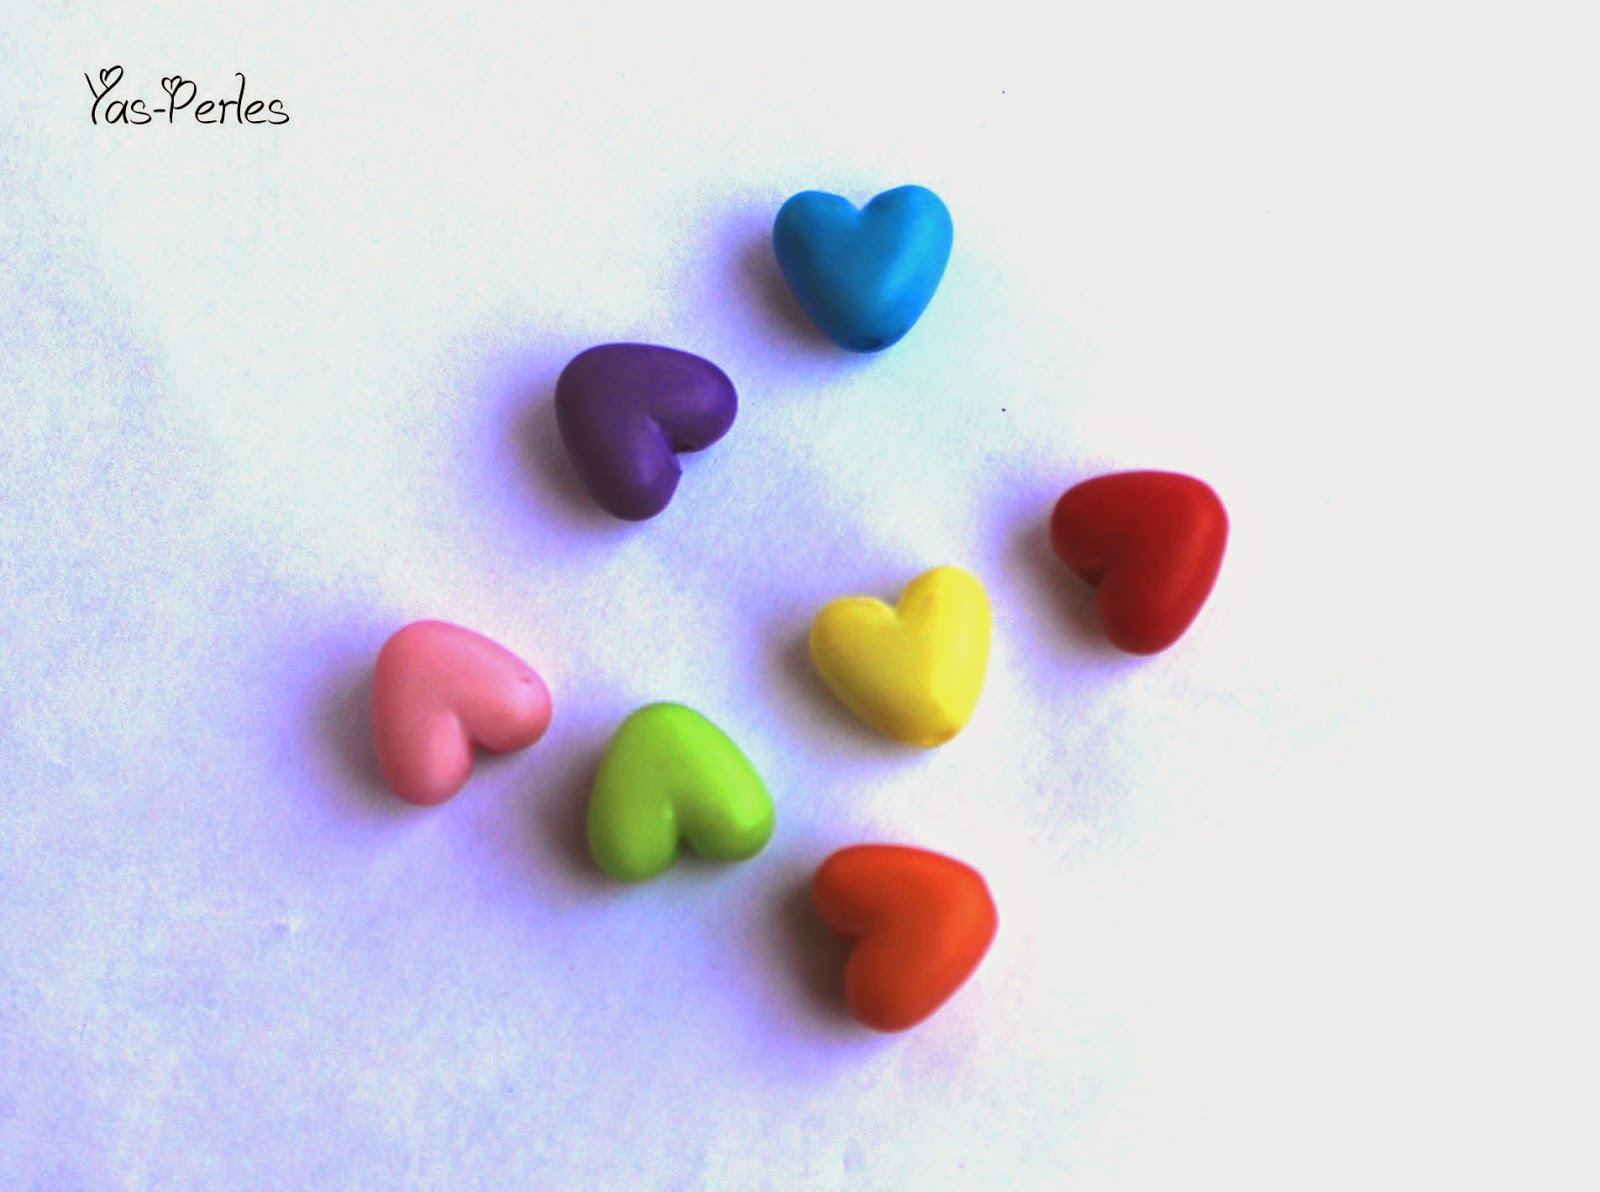 http://www.alittlemercerie.com/perles-synthetiques/fr_perle_acrylique_depolie_forme_coeur_x20_-3198489.html